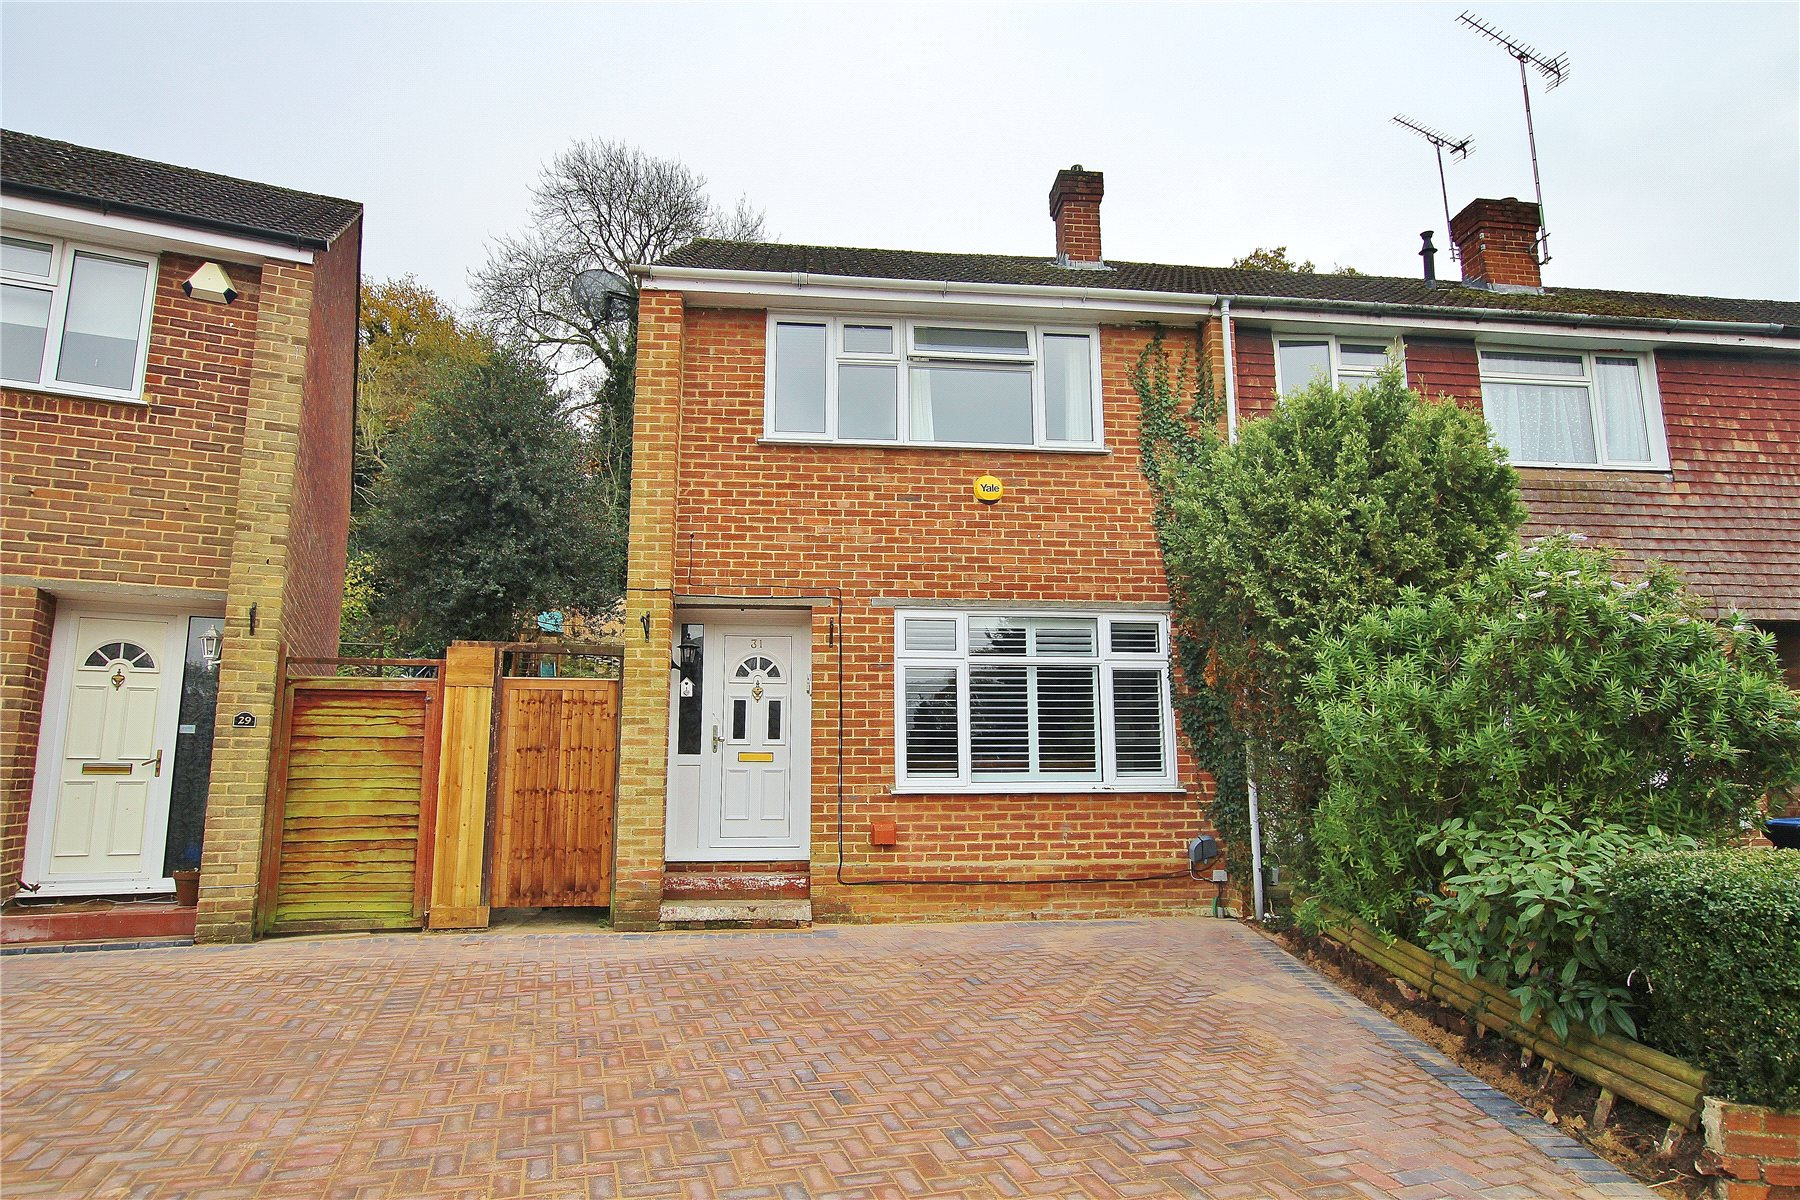 3 Bedrooms End Of Terrace House for sale in Robin Hood Crescent, Knaphill, Woking, Surrey, GU21